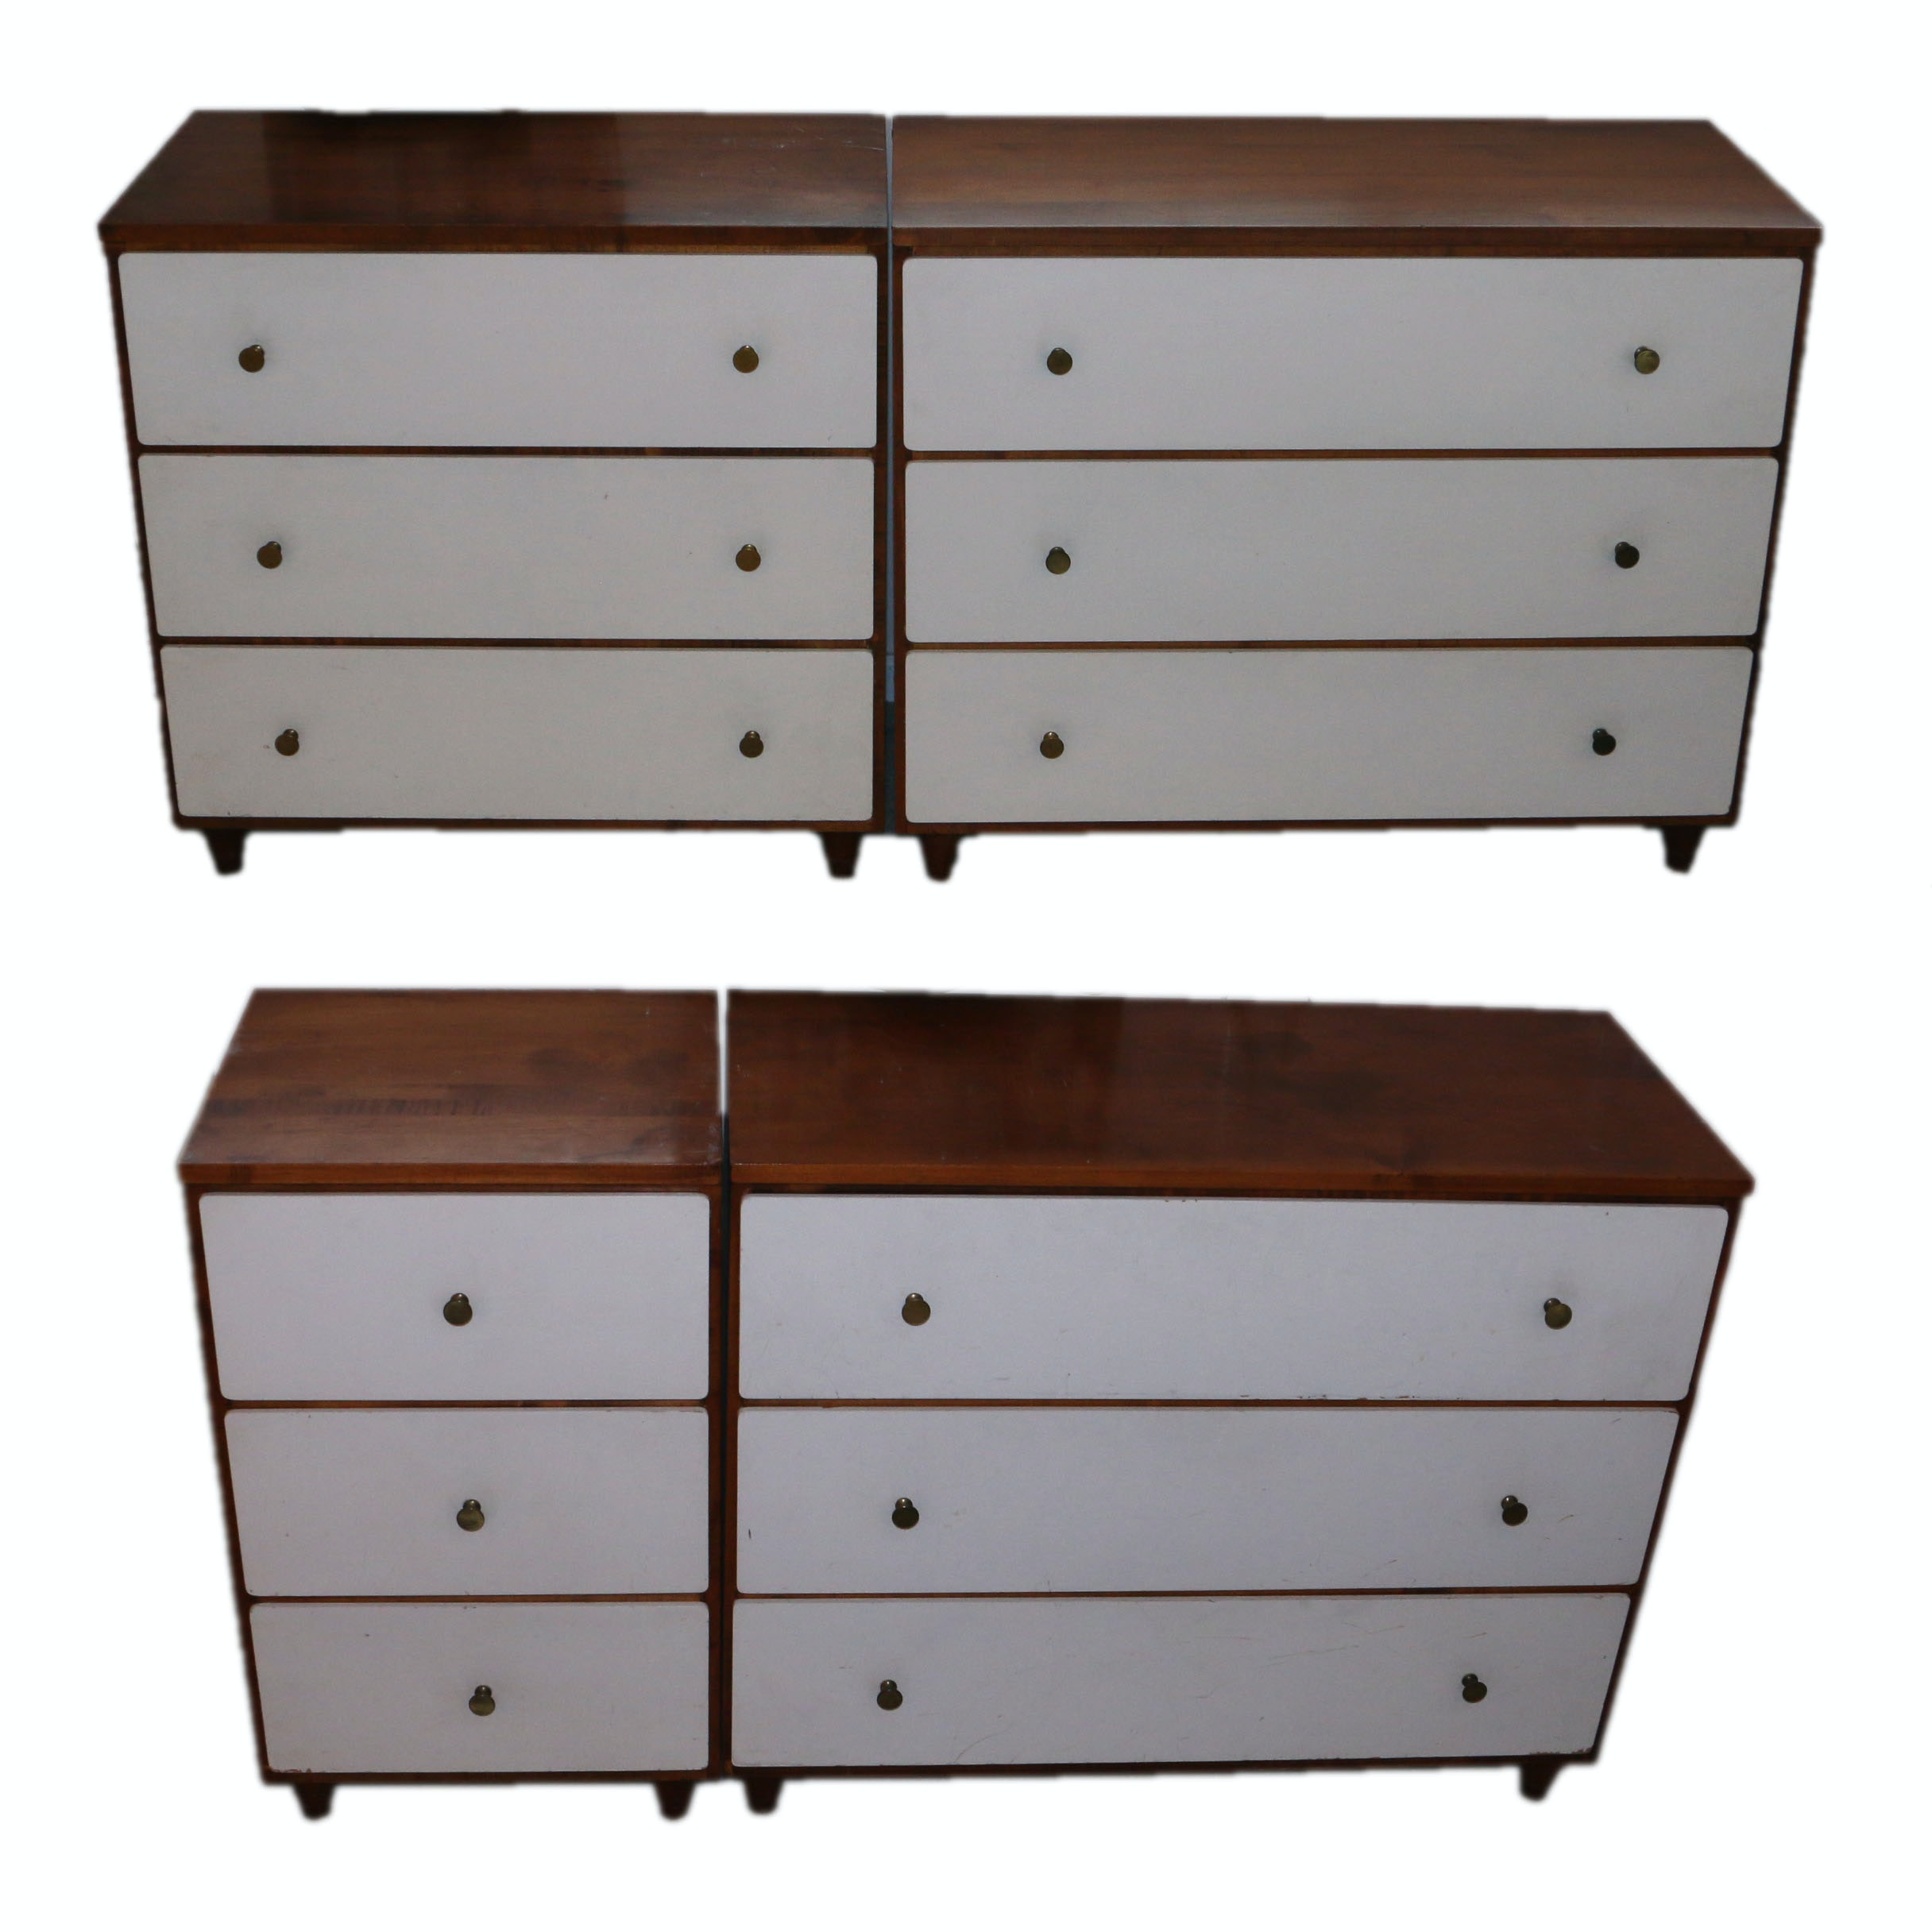 Set of Four Mid Century Modern Modular Chests of Drawers